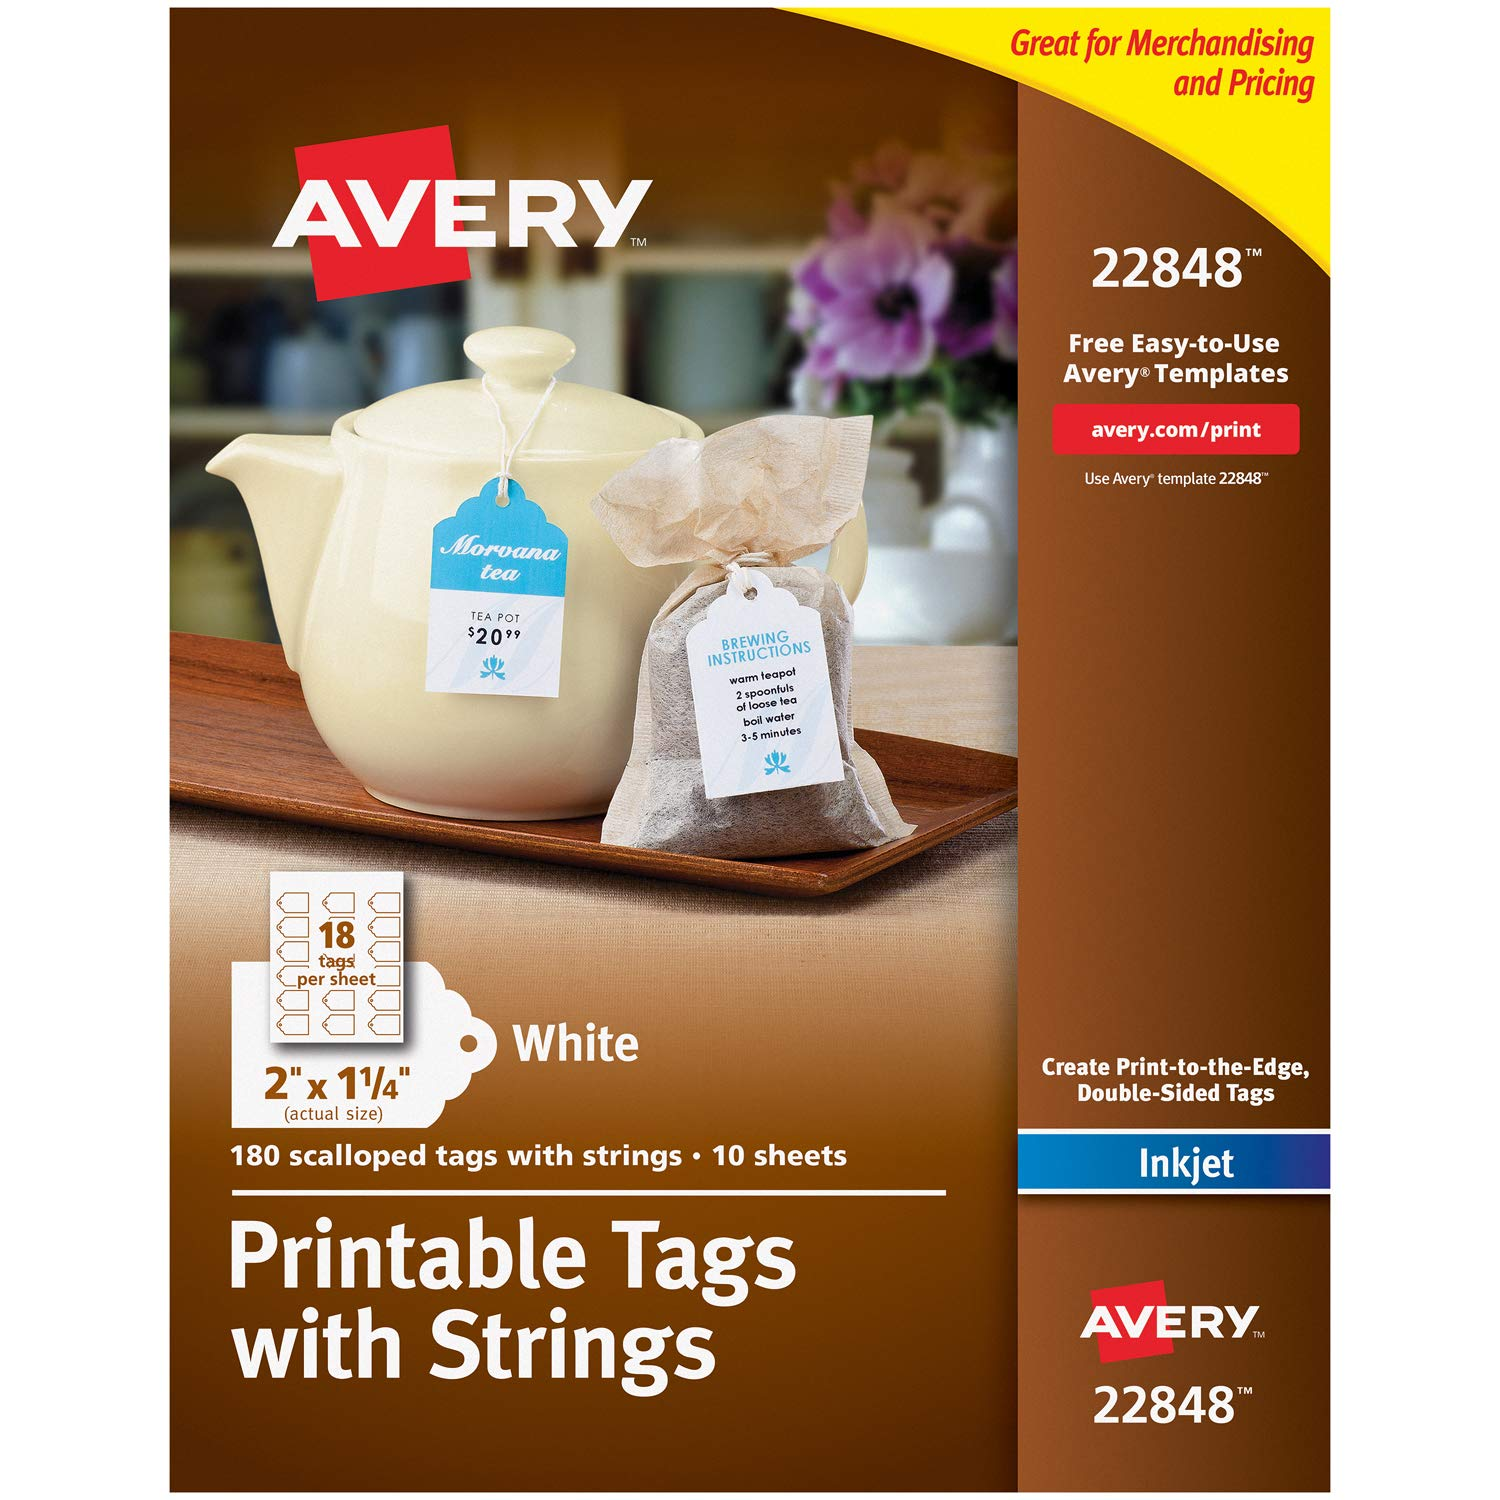 photograph relating to Scalloped Edge Template Printable identified as Avery Scalloped Printable Tags for Inkjet Printers Just, Tags With Strings, 2\